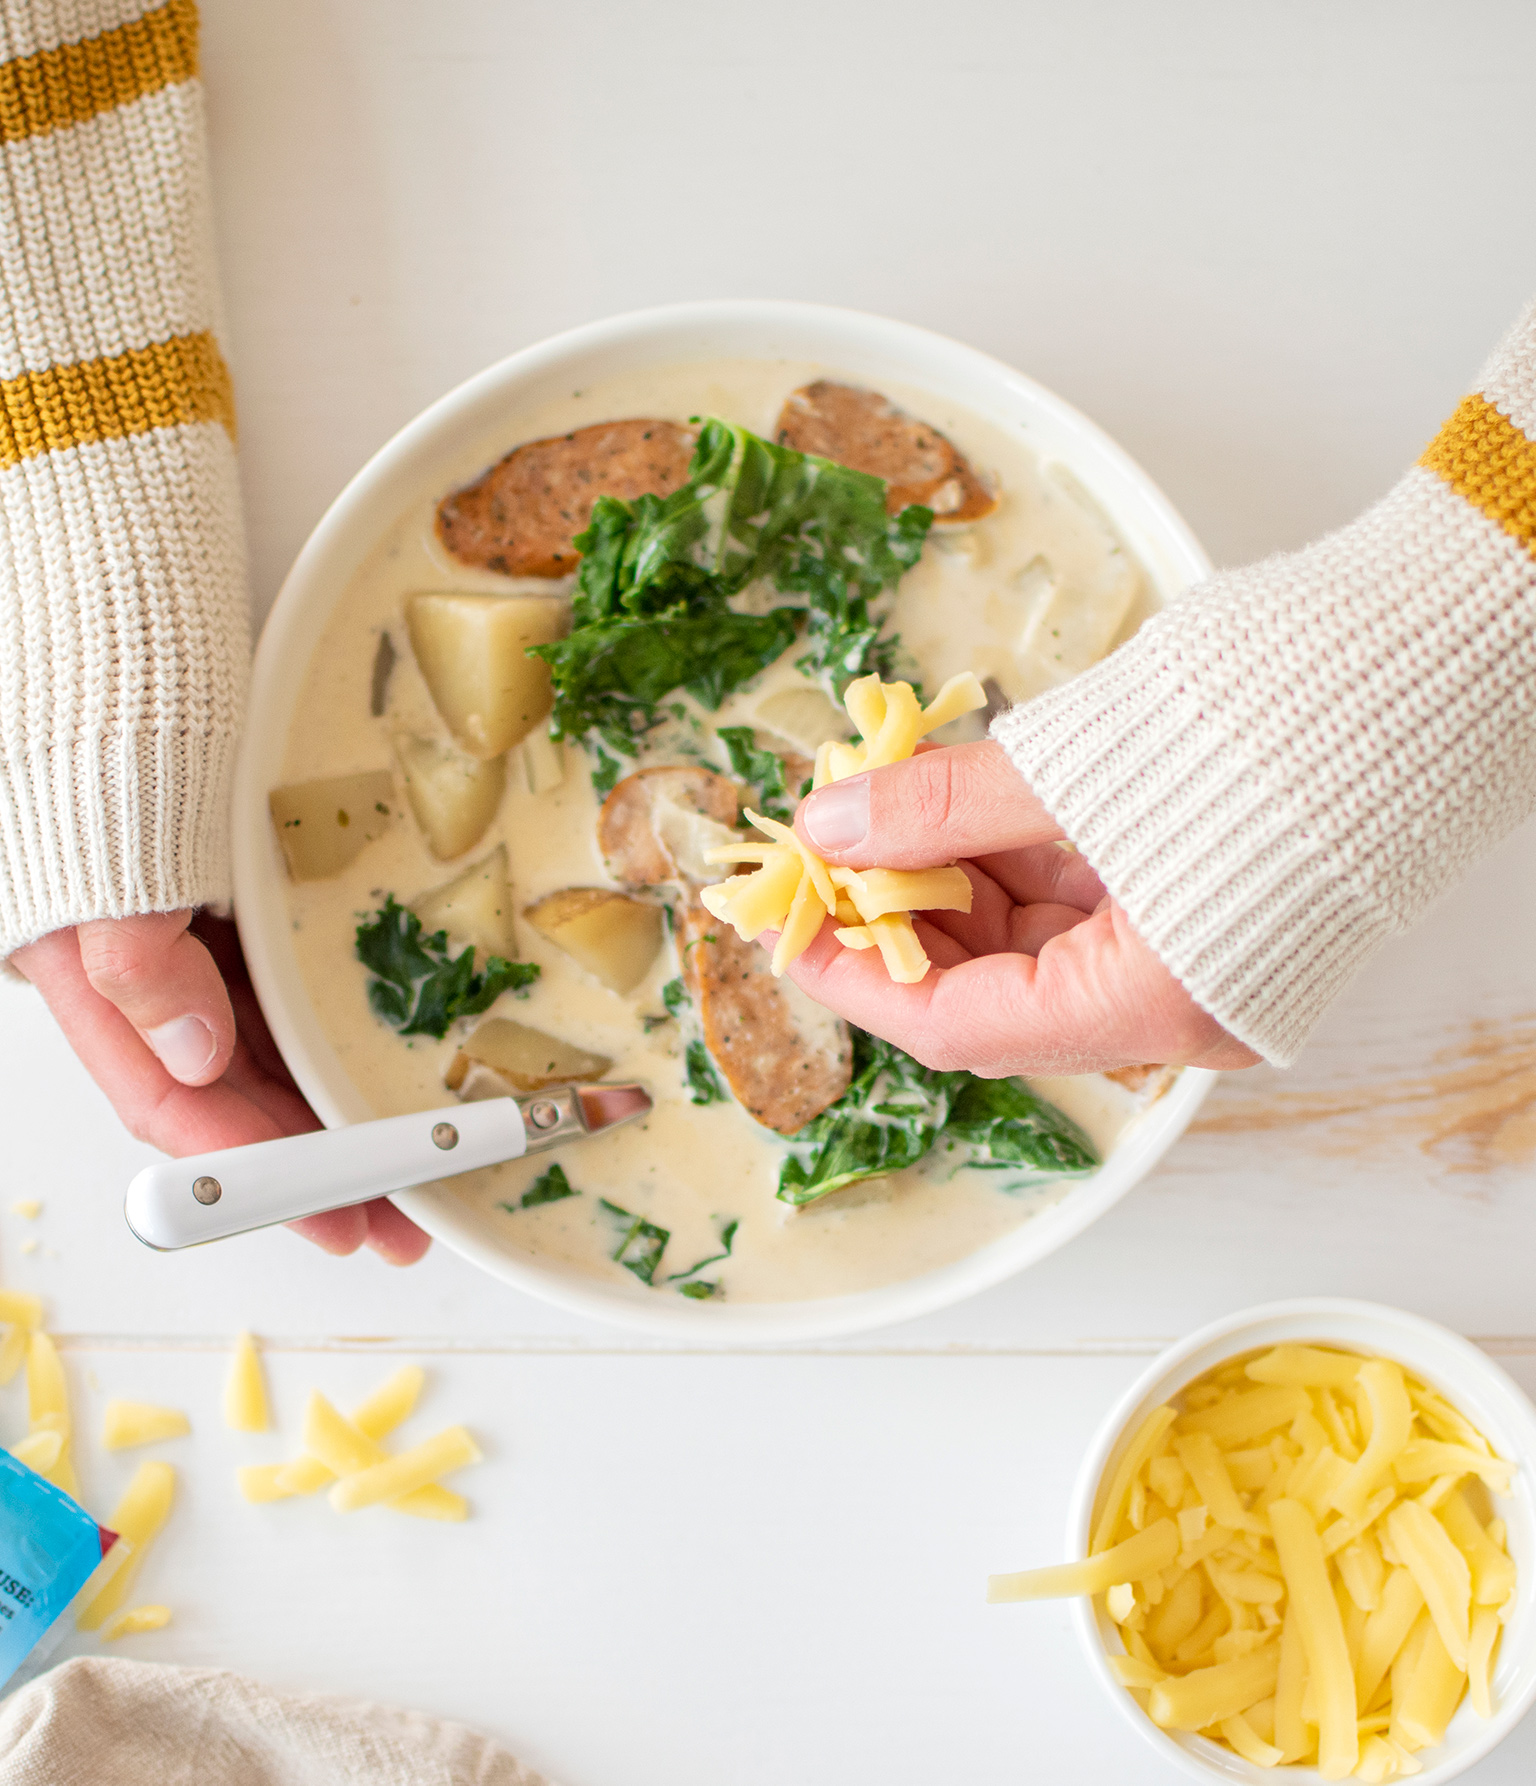 Creamy Sausage, Potato and Kale Soup